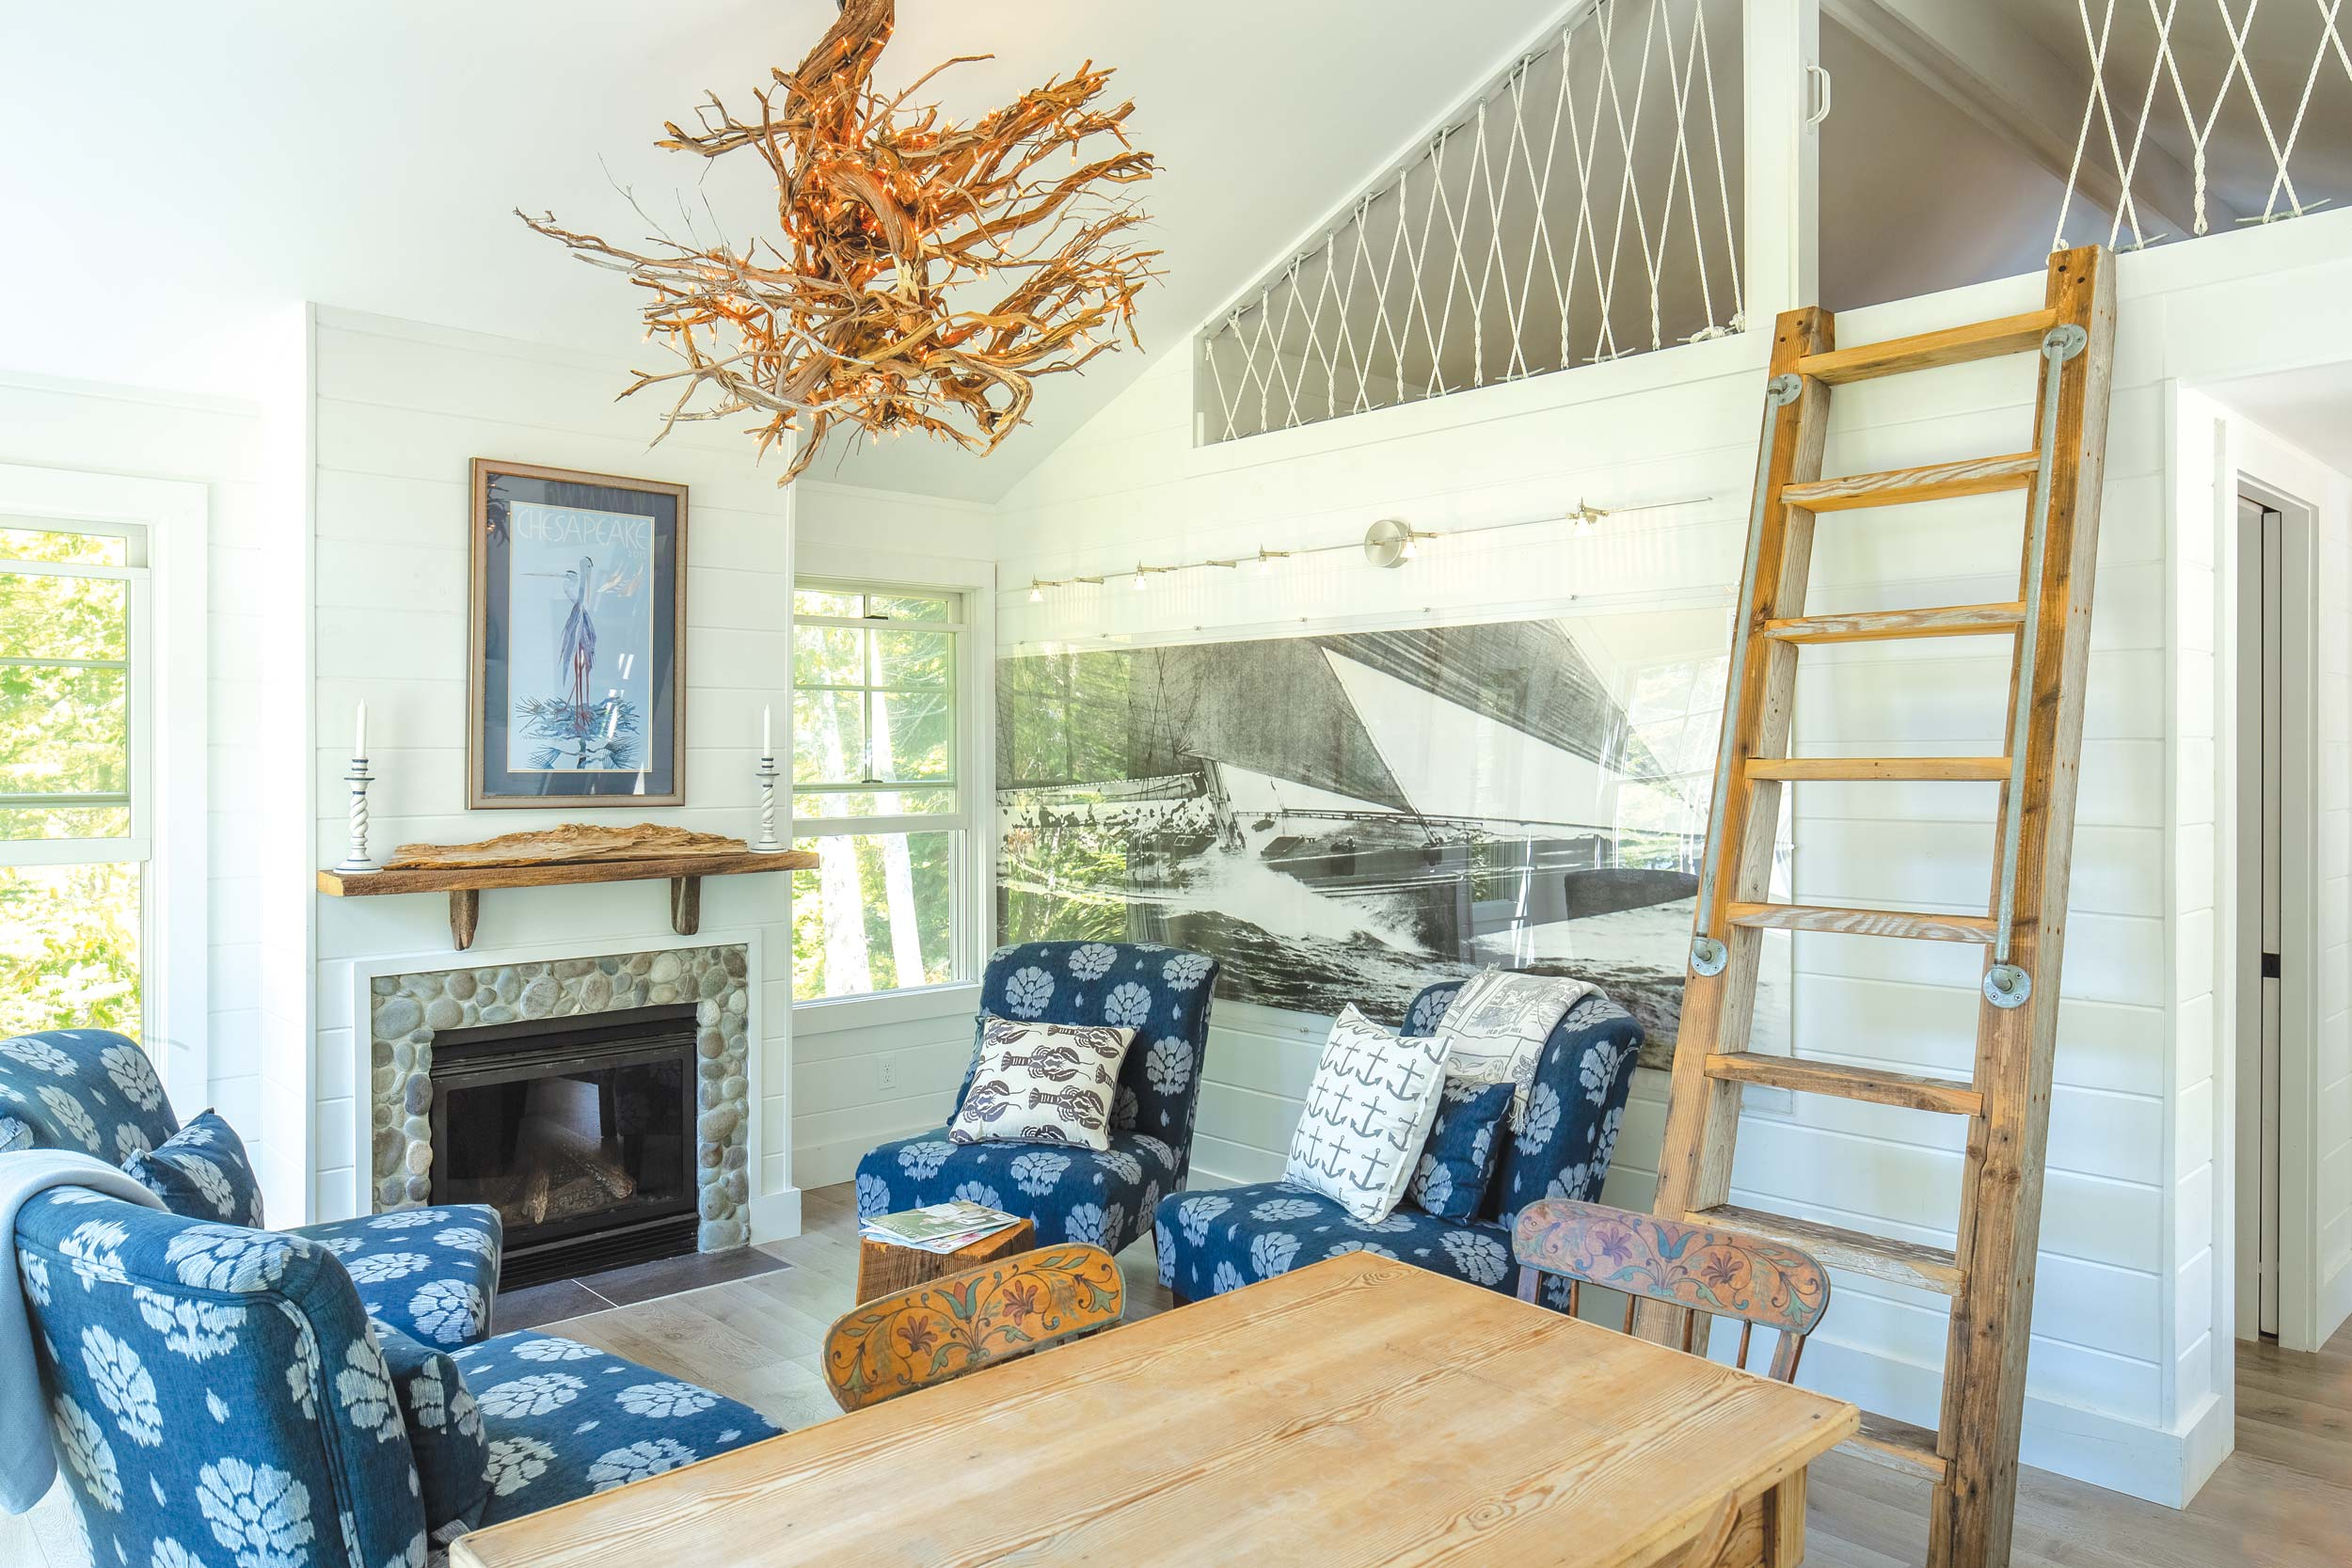 Doug used pieces of an old dock to make a ladder to the guest room loft, which has rope attached to boat cleats in lieu of conventional railing. The fireplace mantel is made from materials found on the beach, as is the stone fireplace surround.